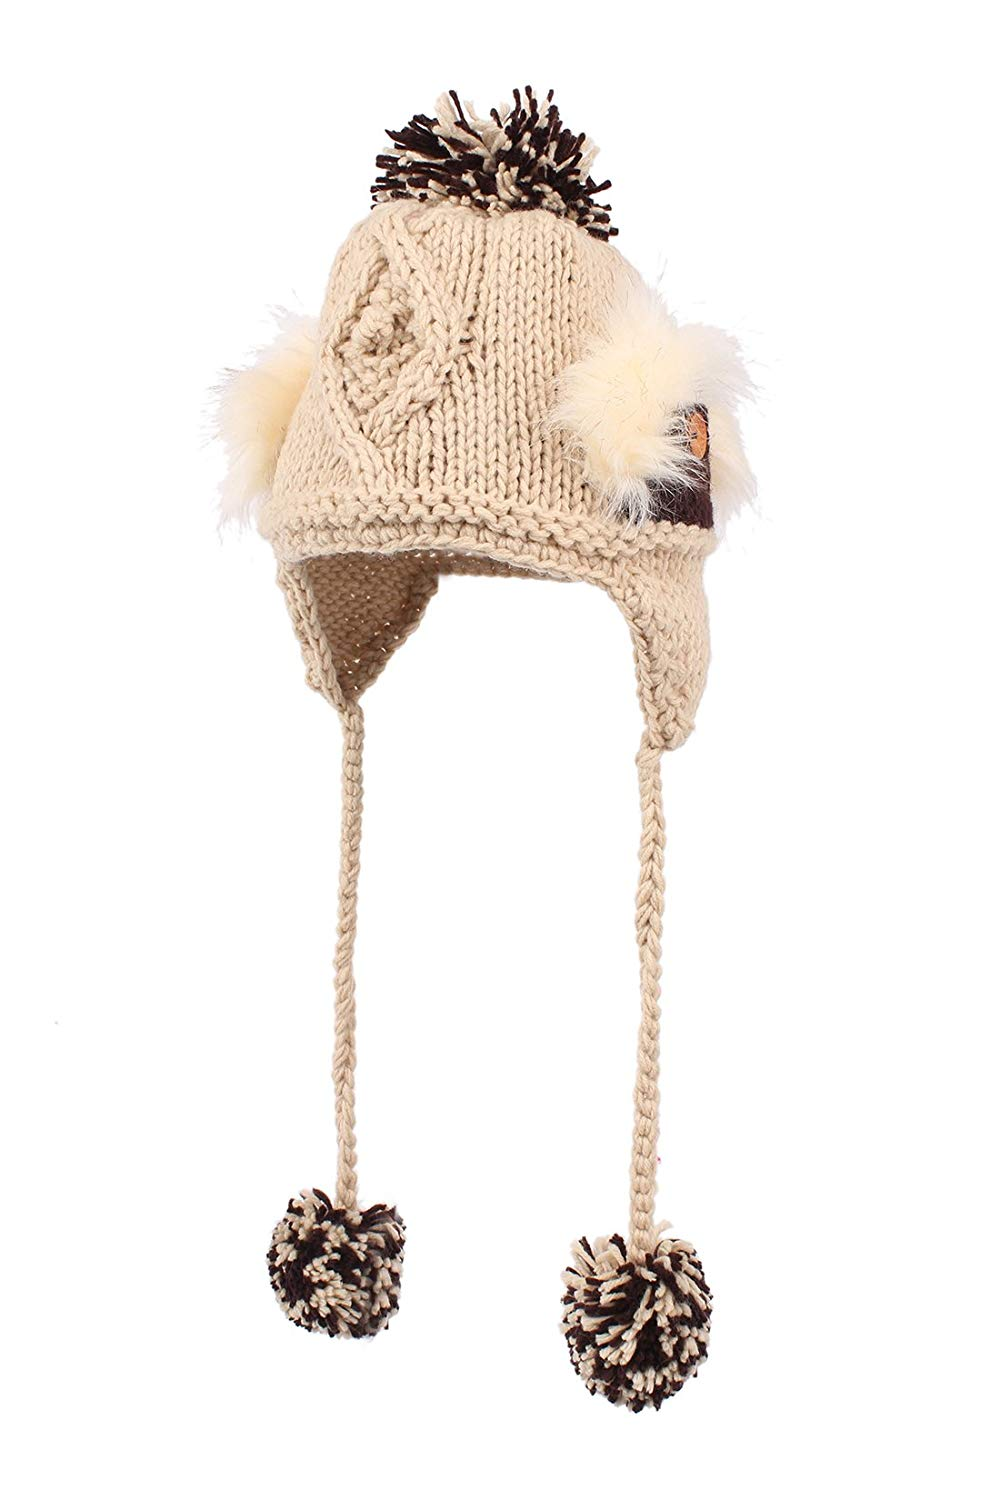 9e206bbe1d0 Get Quotations · HUAN XUN Earflap Hat Winter Faux Fur Trapper Ski Hats  Womens Girls Mens Multi Styles